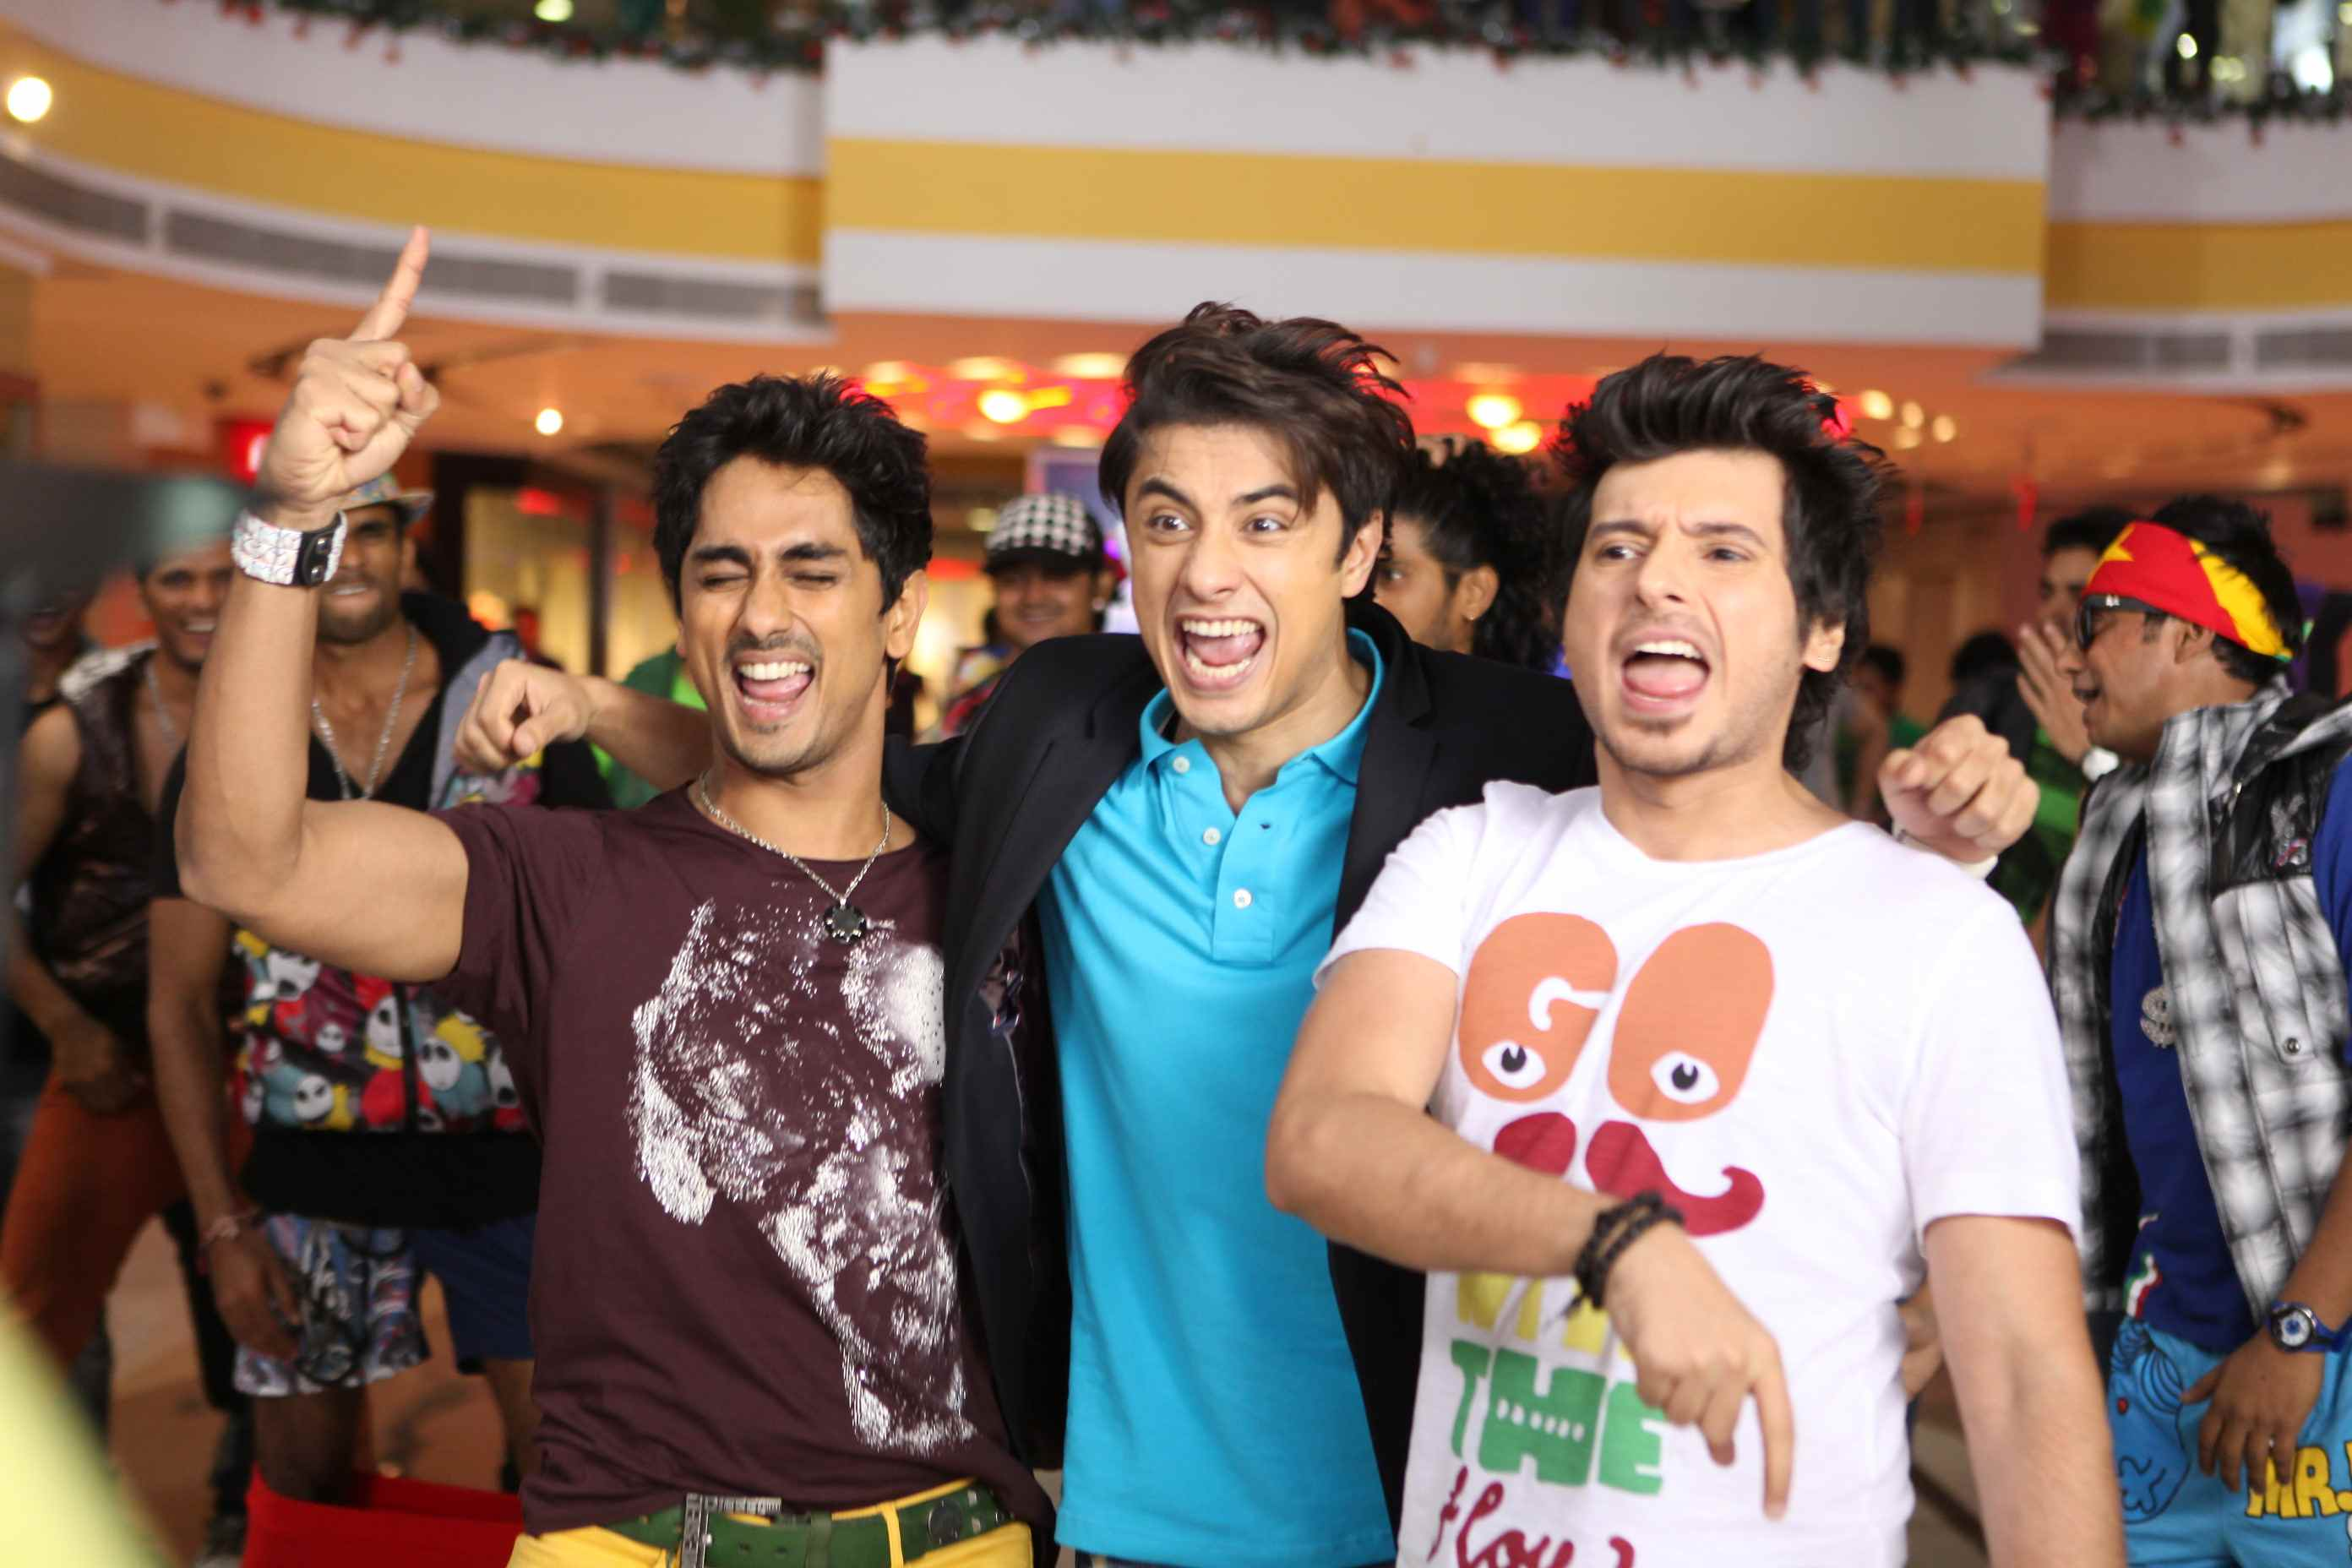 Chashme Baddoor 4 UK Readers! Win Chashme Baddoor CDs!